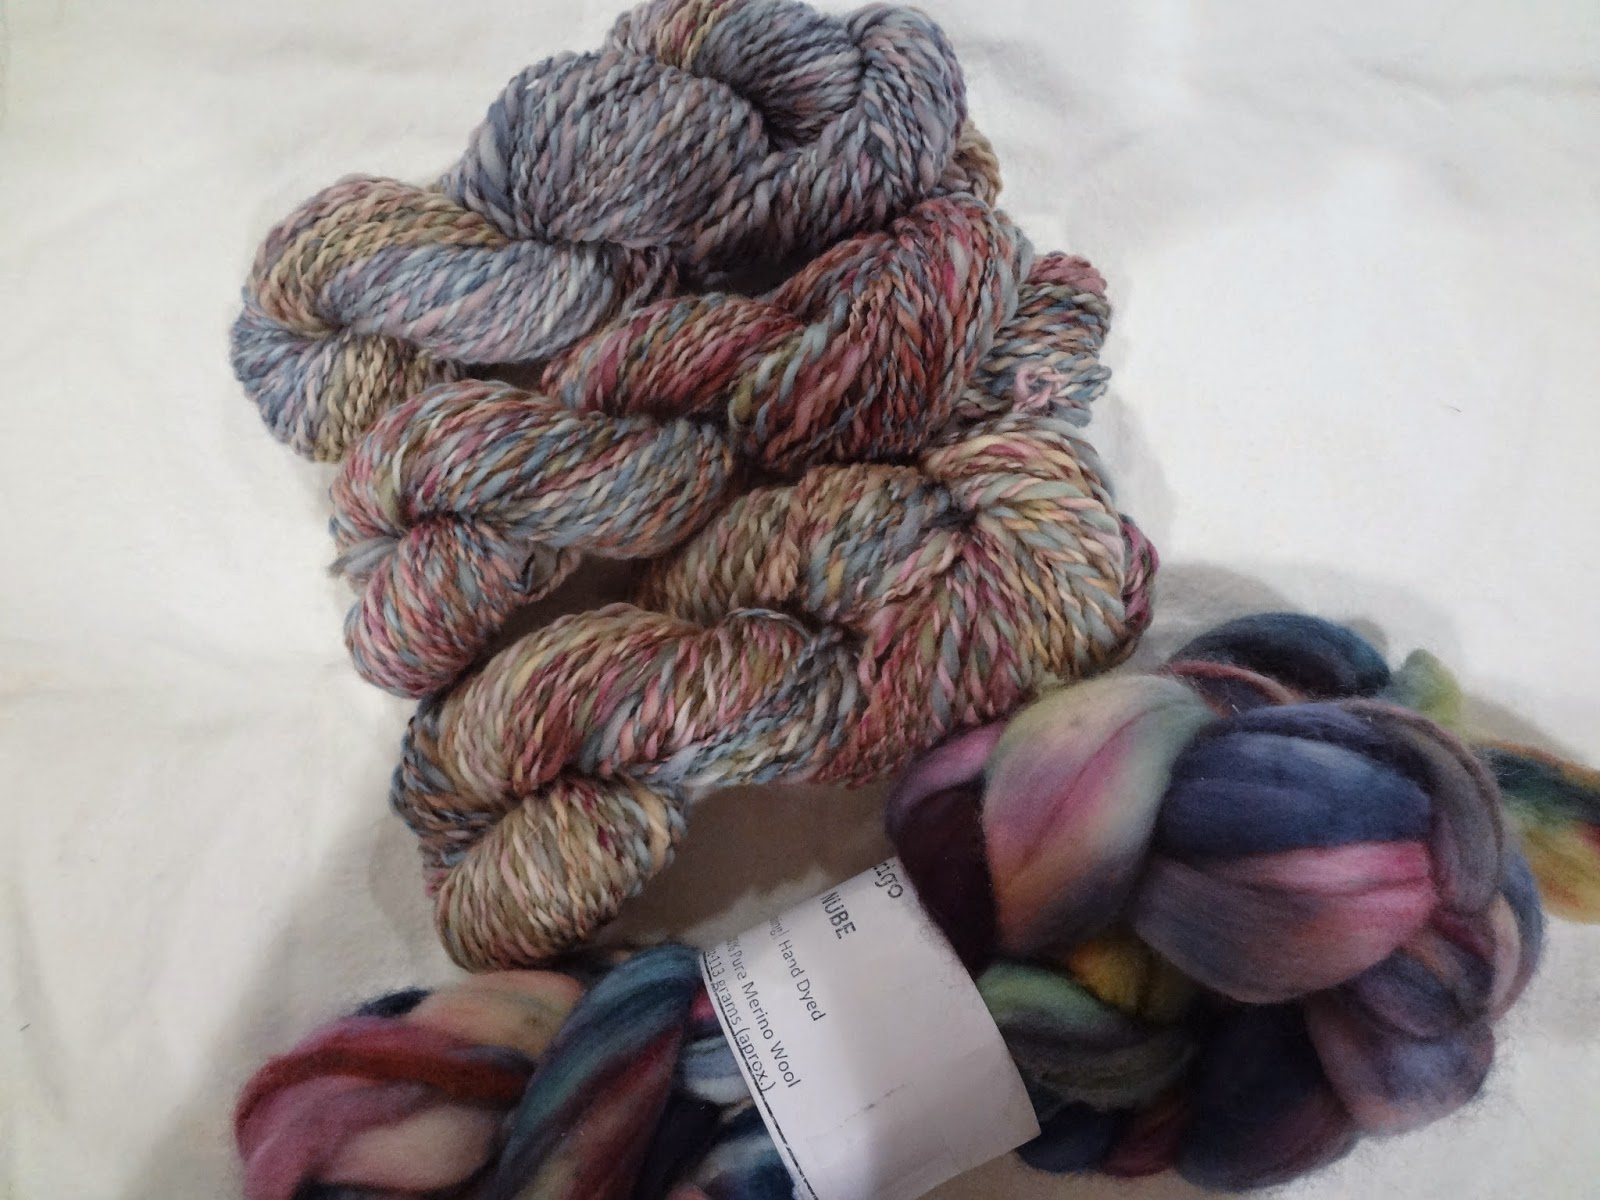 Three skeins of handspun yarn and a bundle of roving on a white background.